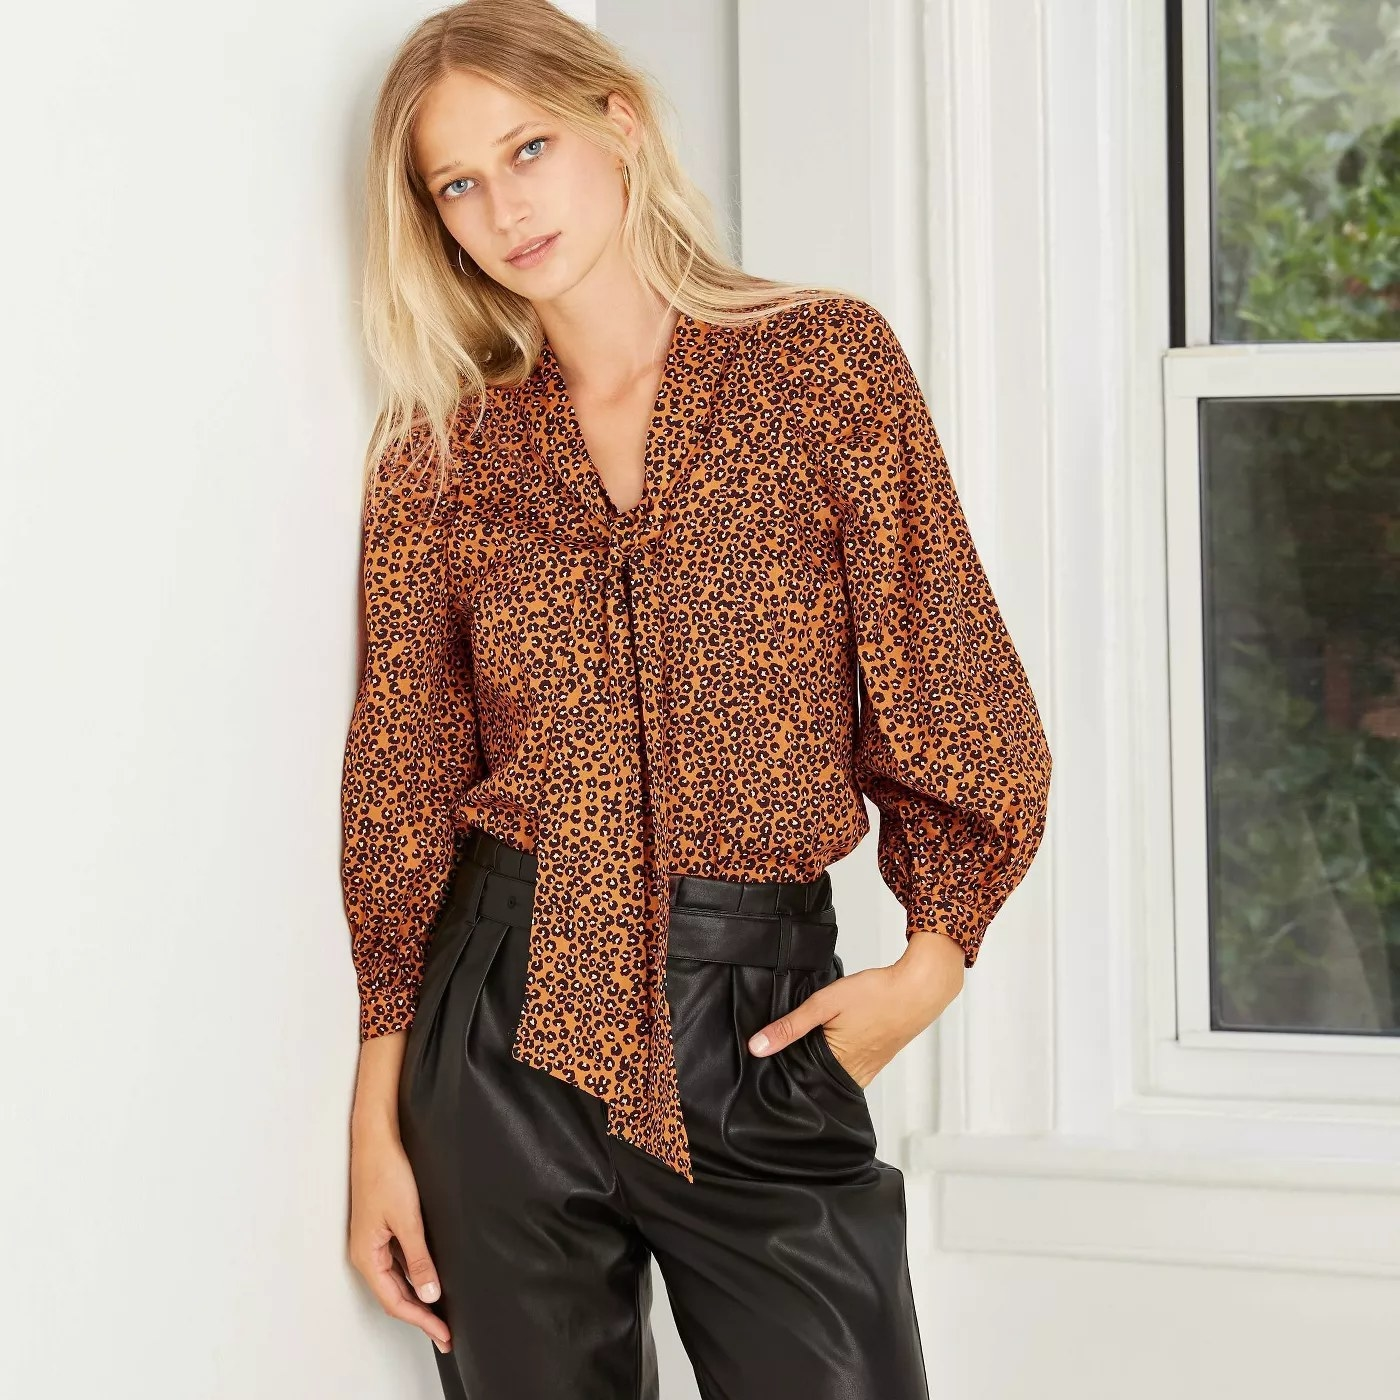 A brown and black leopard blouse with extra fabric hanging